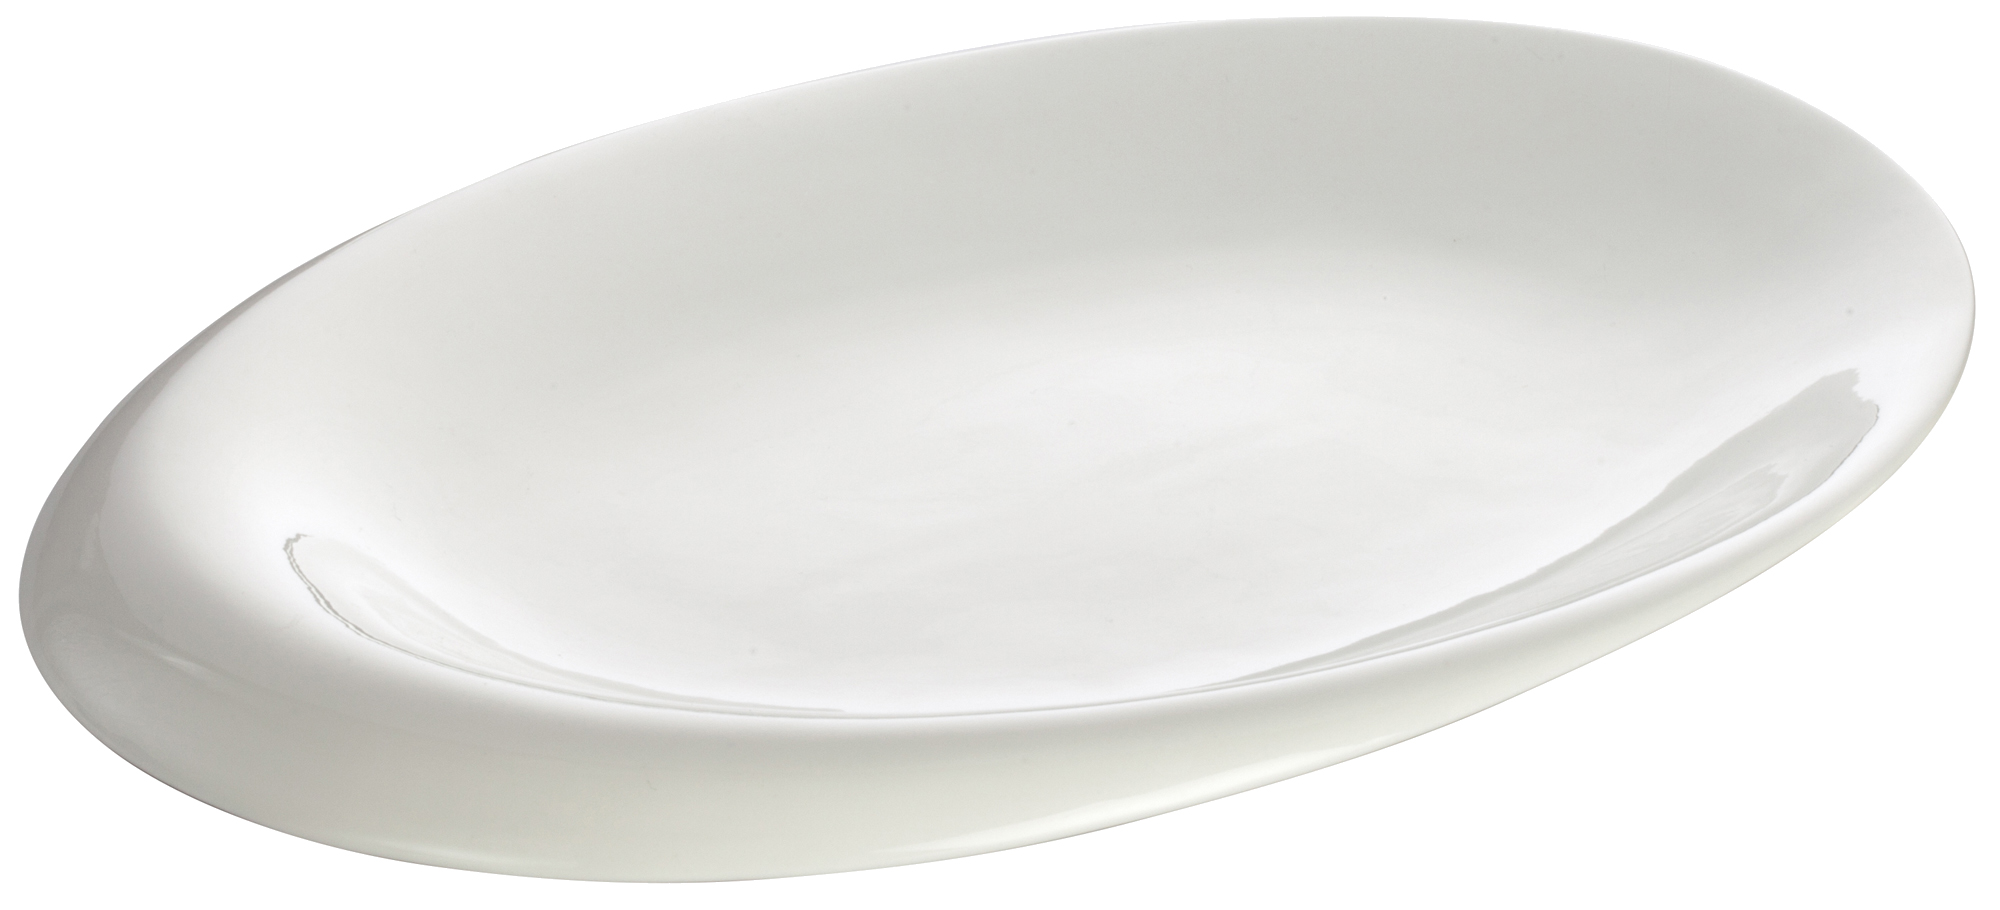 Winco WDP004-211 china, bowl (unknown capacity)